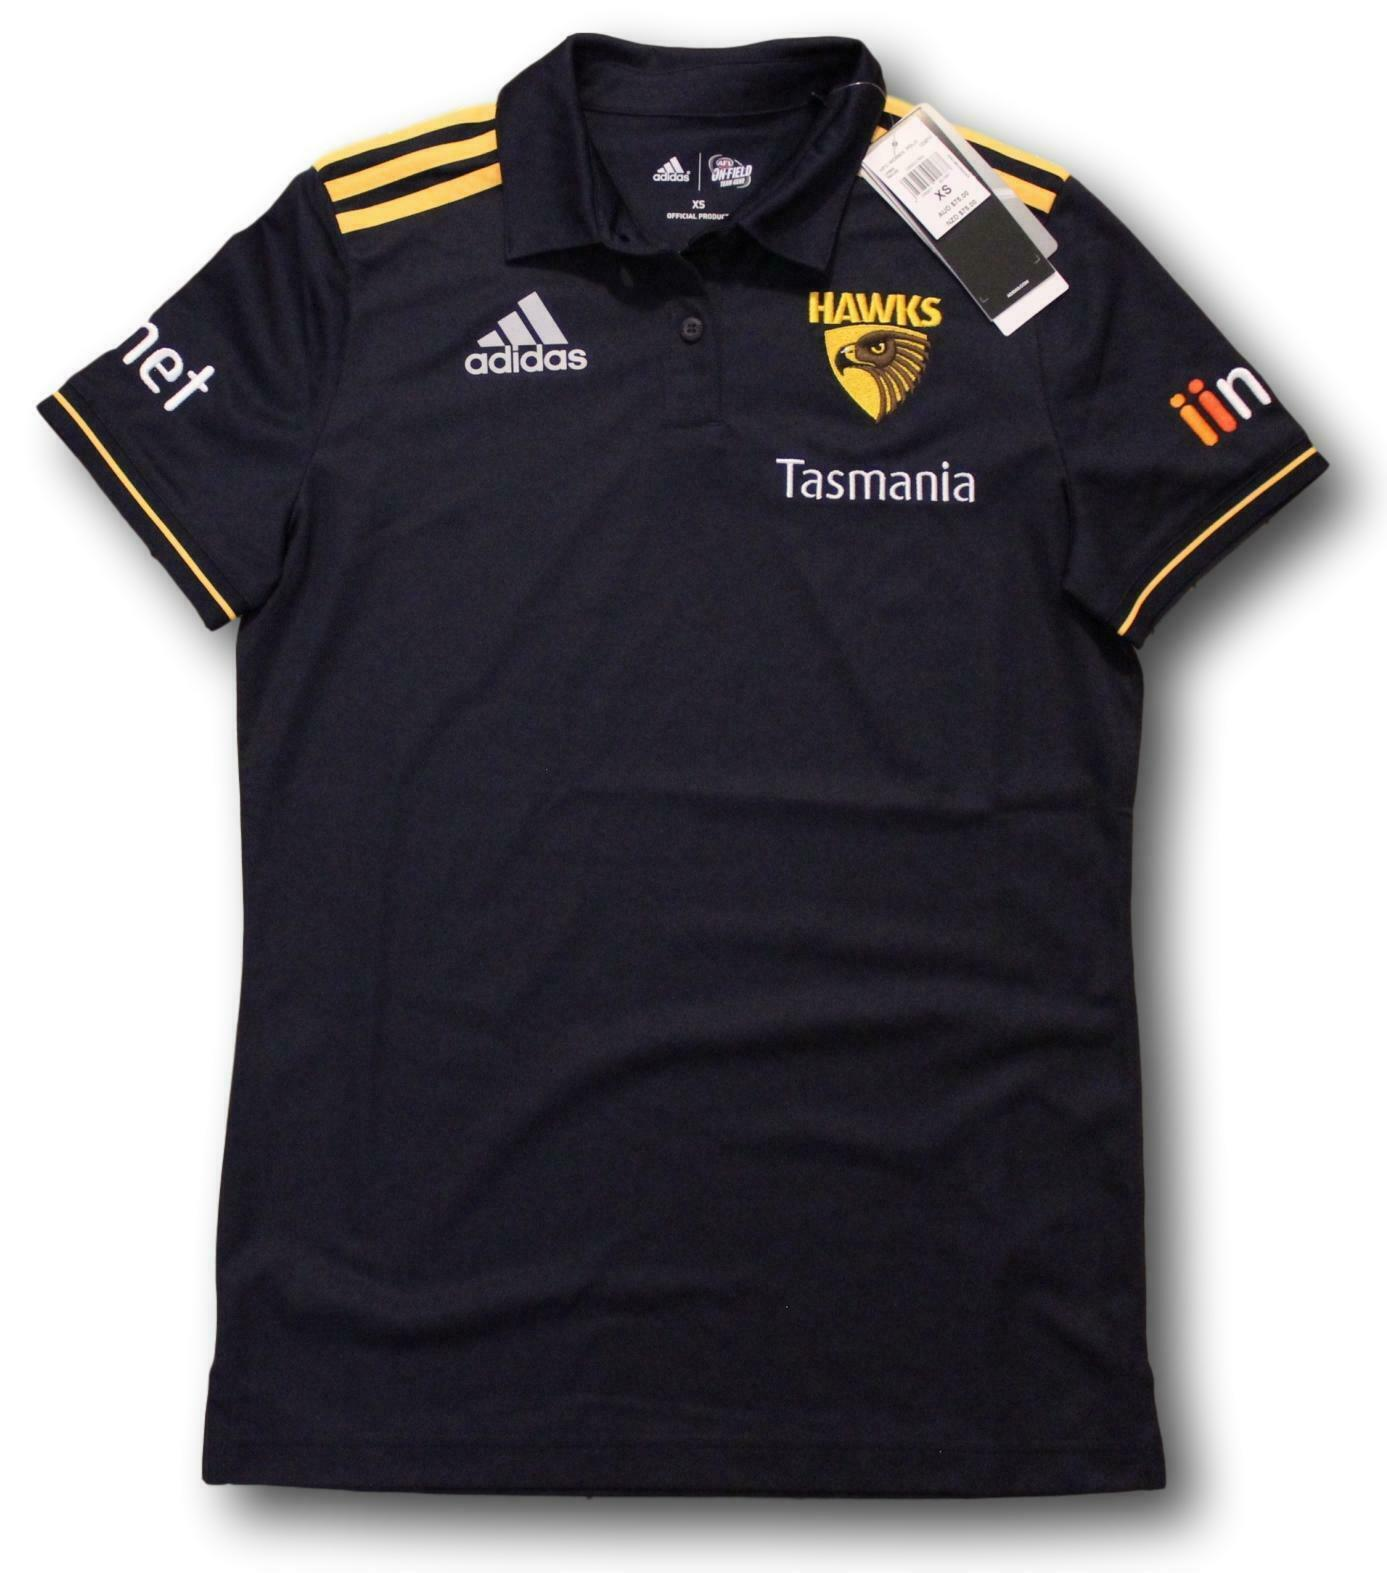 Women s Hawthorn Hawks Adidas Top Shirt New Size XS Only 2018 Polo ... cccc9e809c987